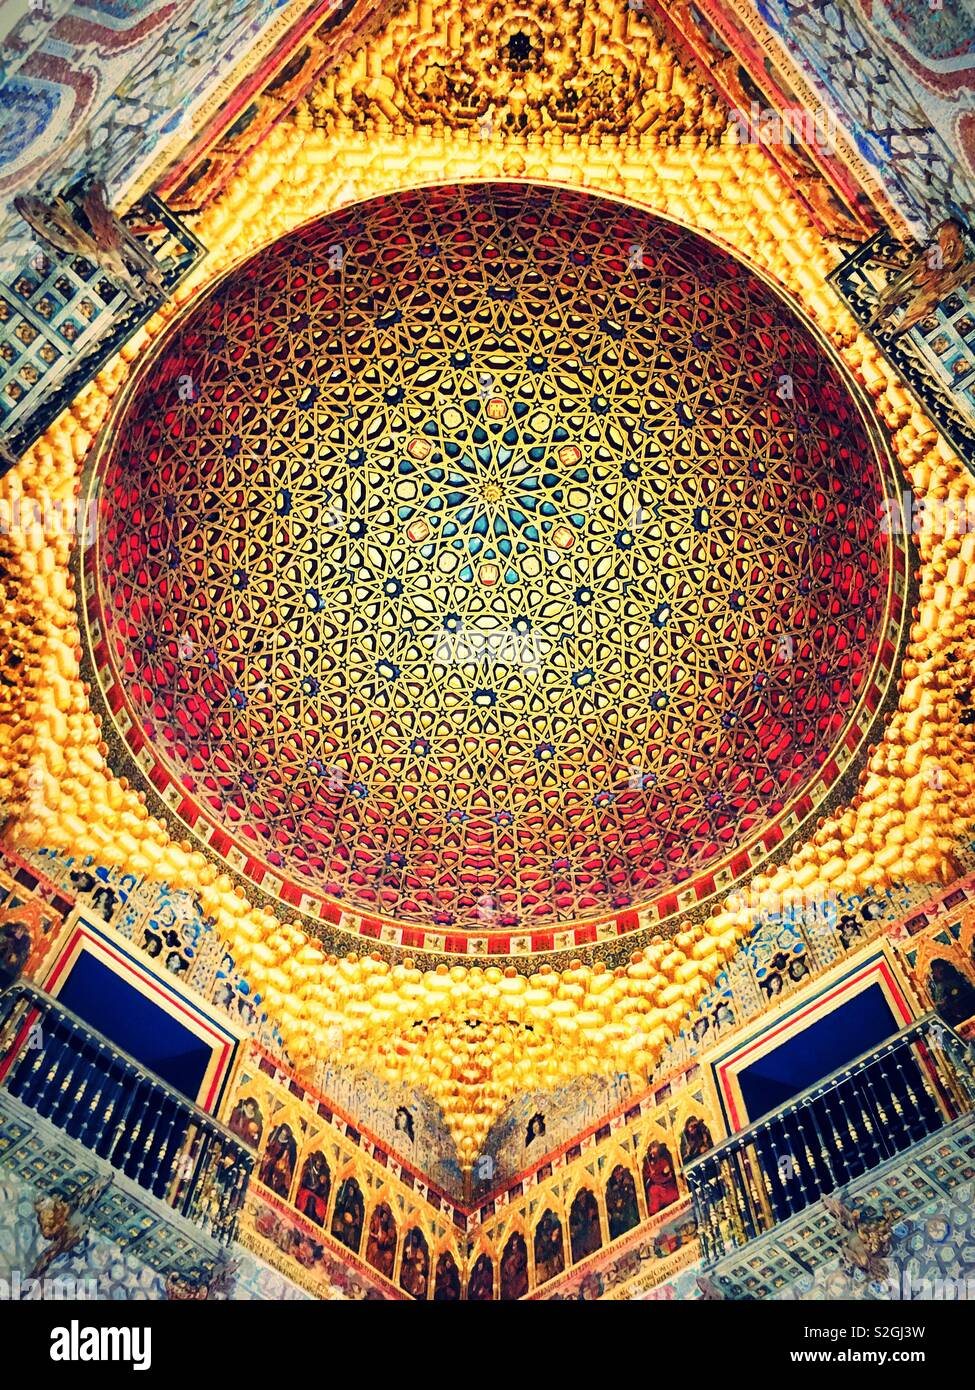 Royal alcazar of Sevilla - ceiling - Stock Image